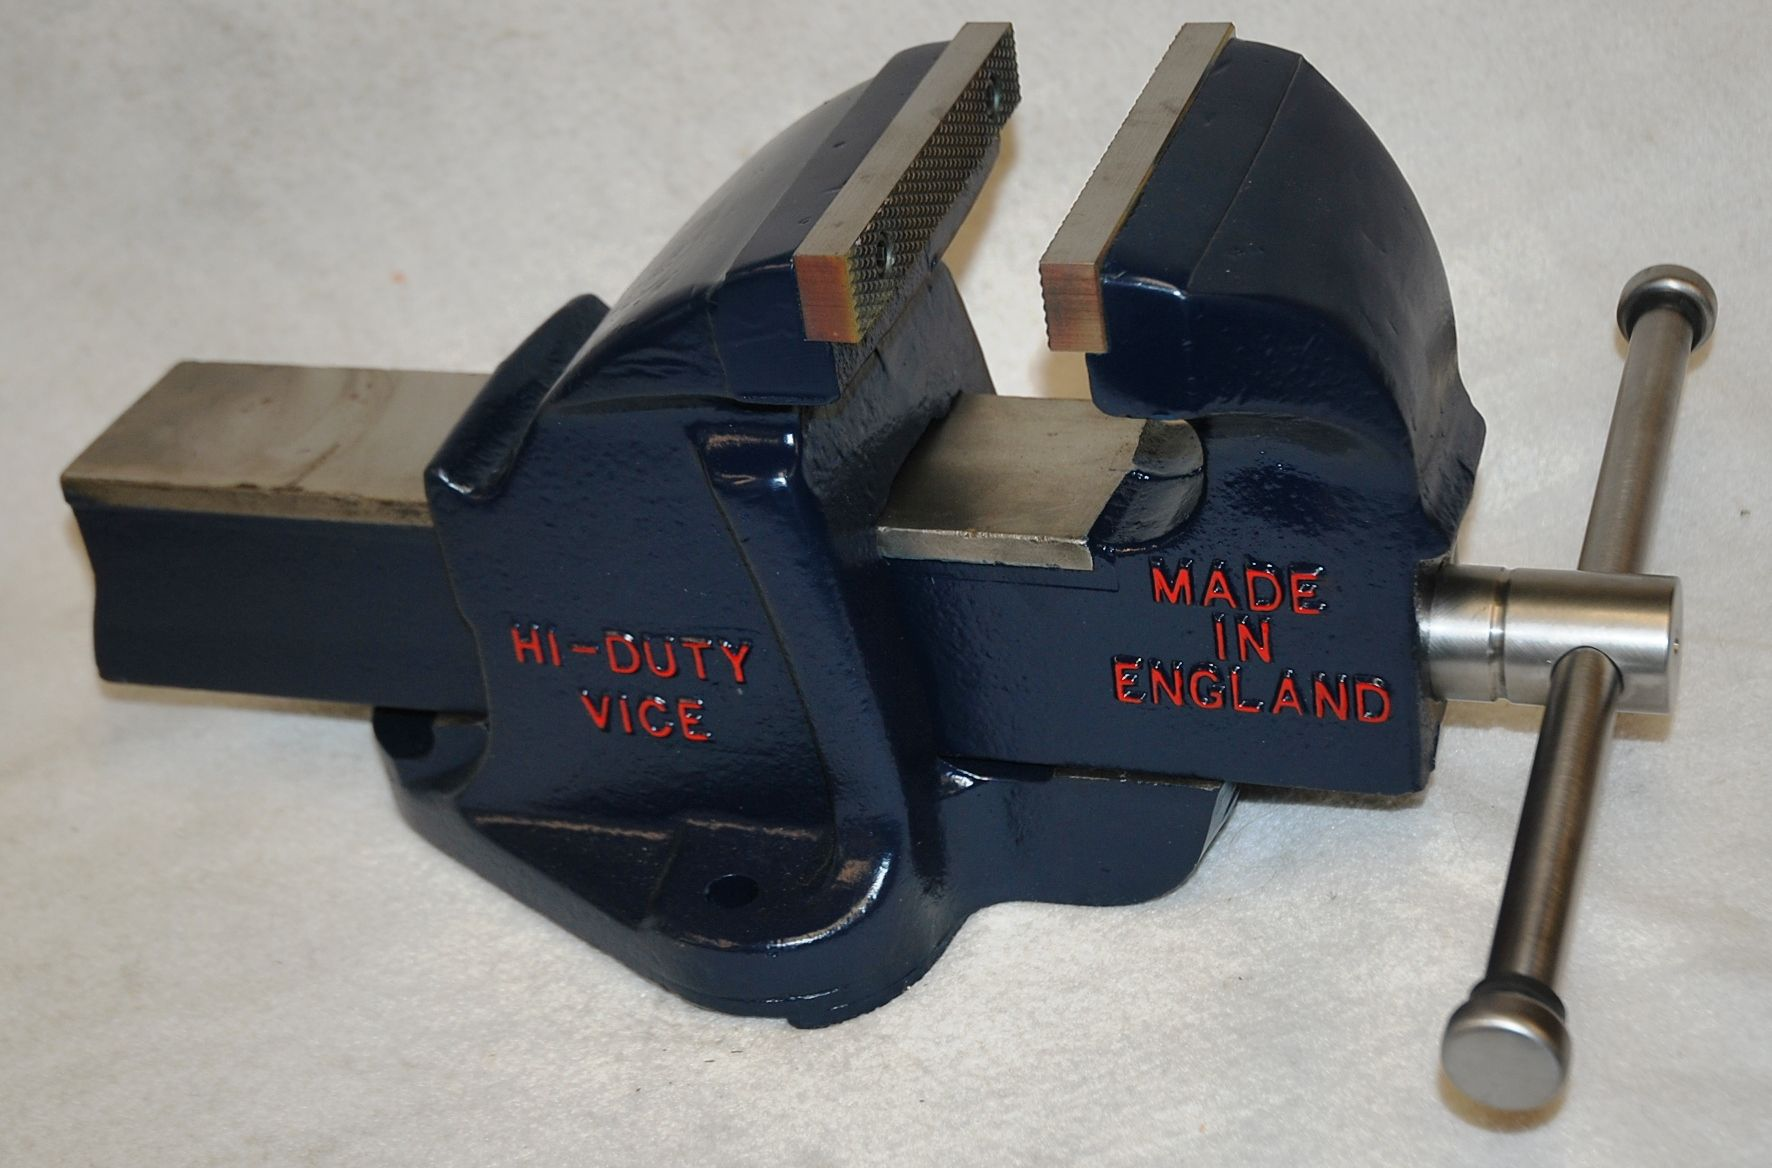 Paramo 6 Bench Vice 6 Inch Jaws And Weights Over 85 Lbs Nice English Vice Bench Vise Bench Vice Vises